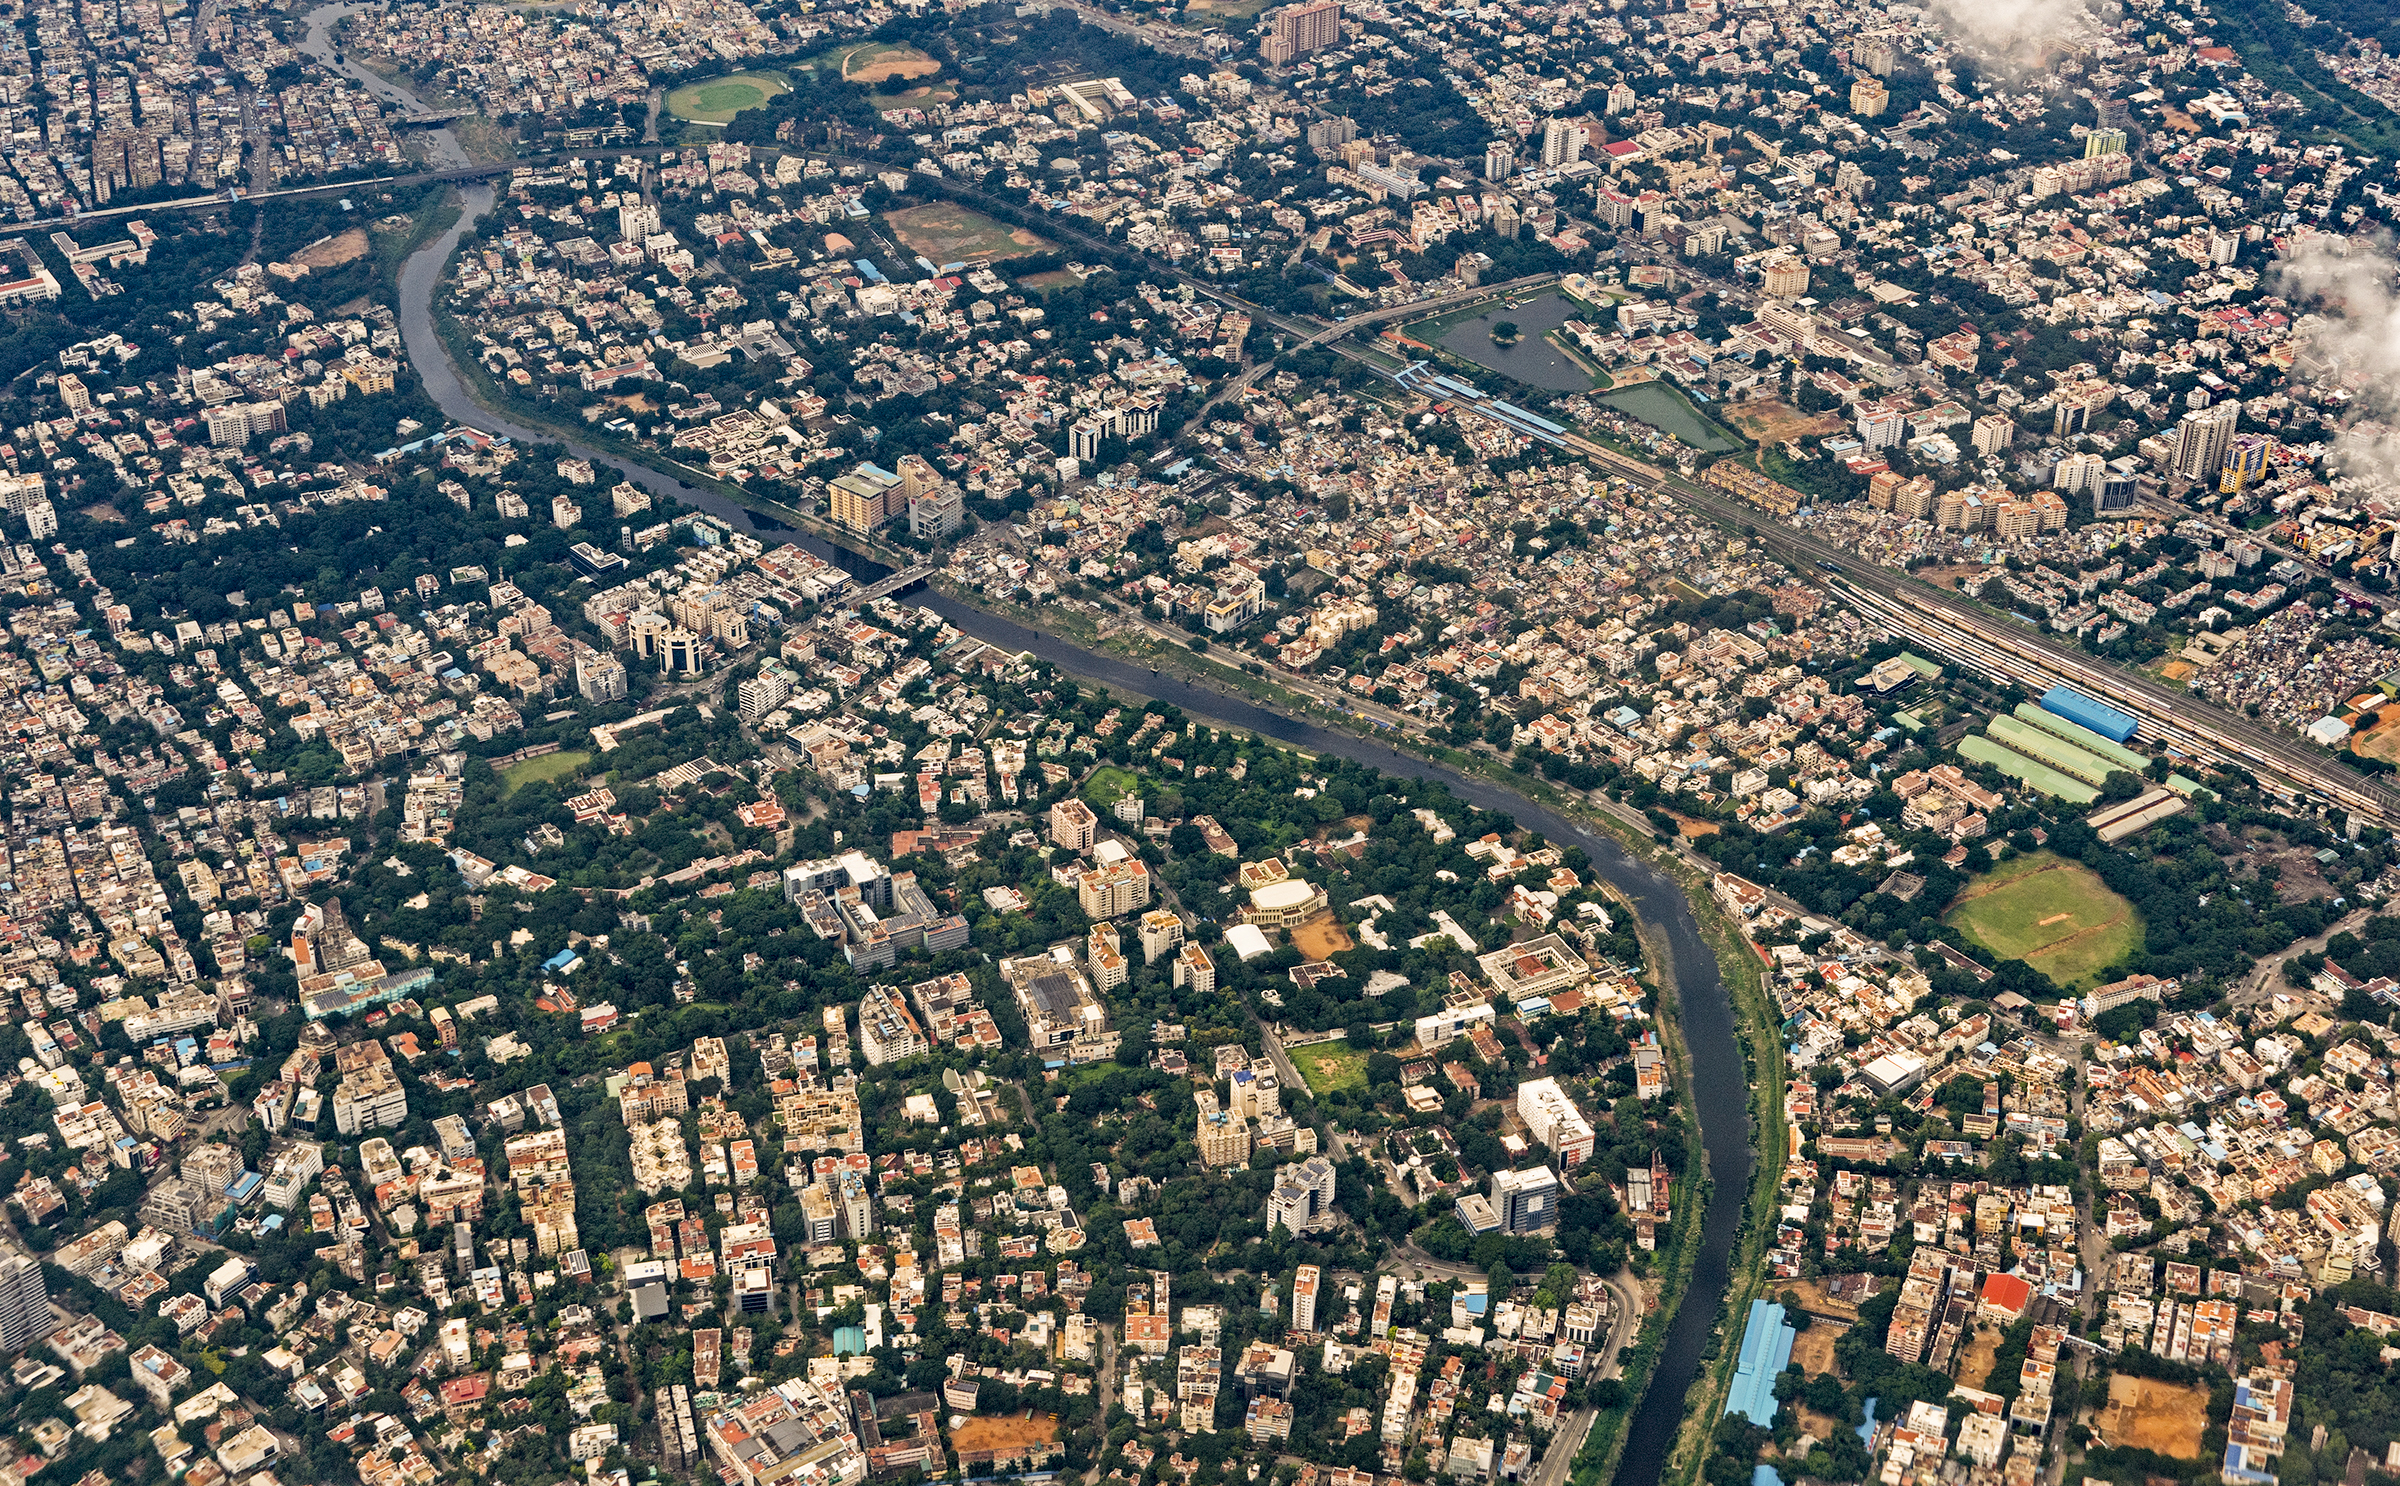 An aerial view of Chennai, India's fourth largest city.